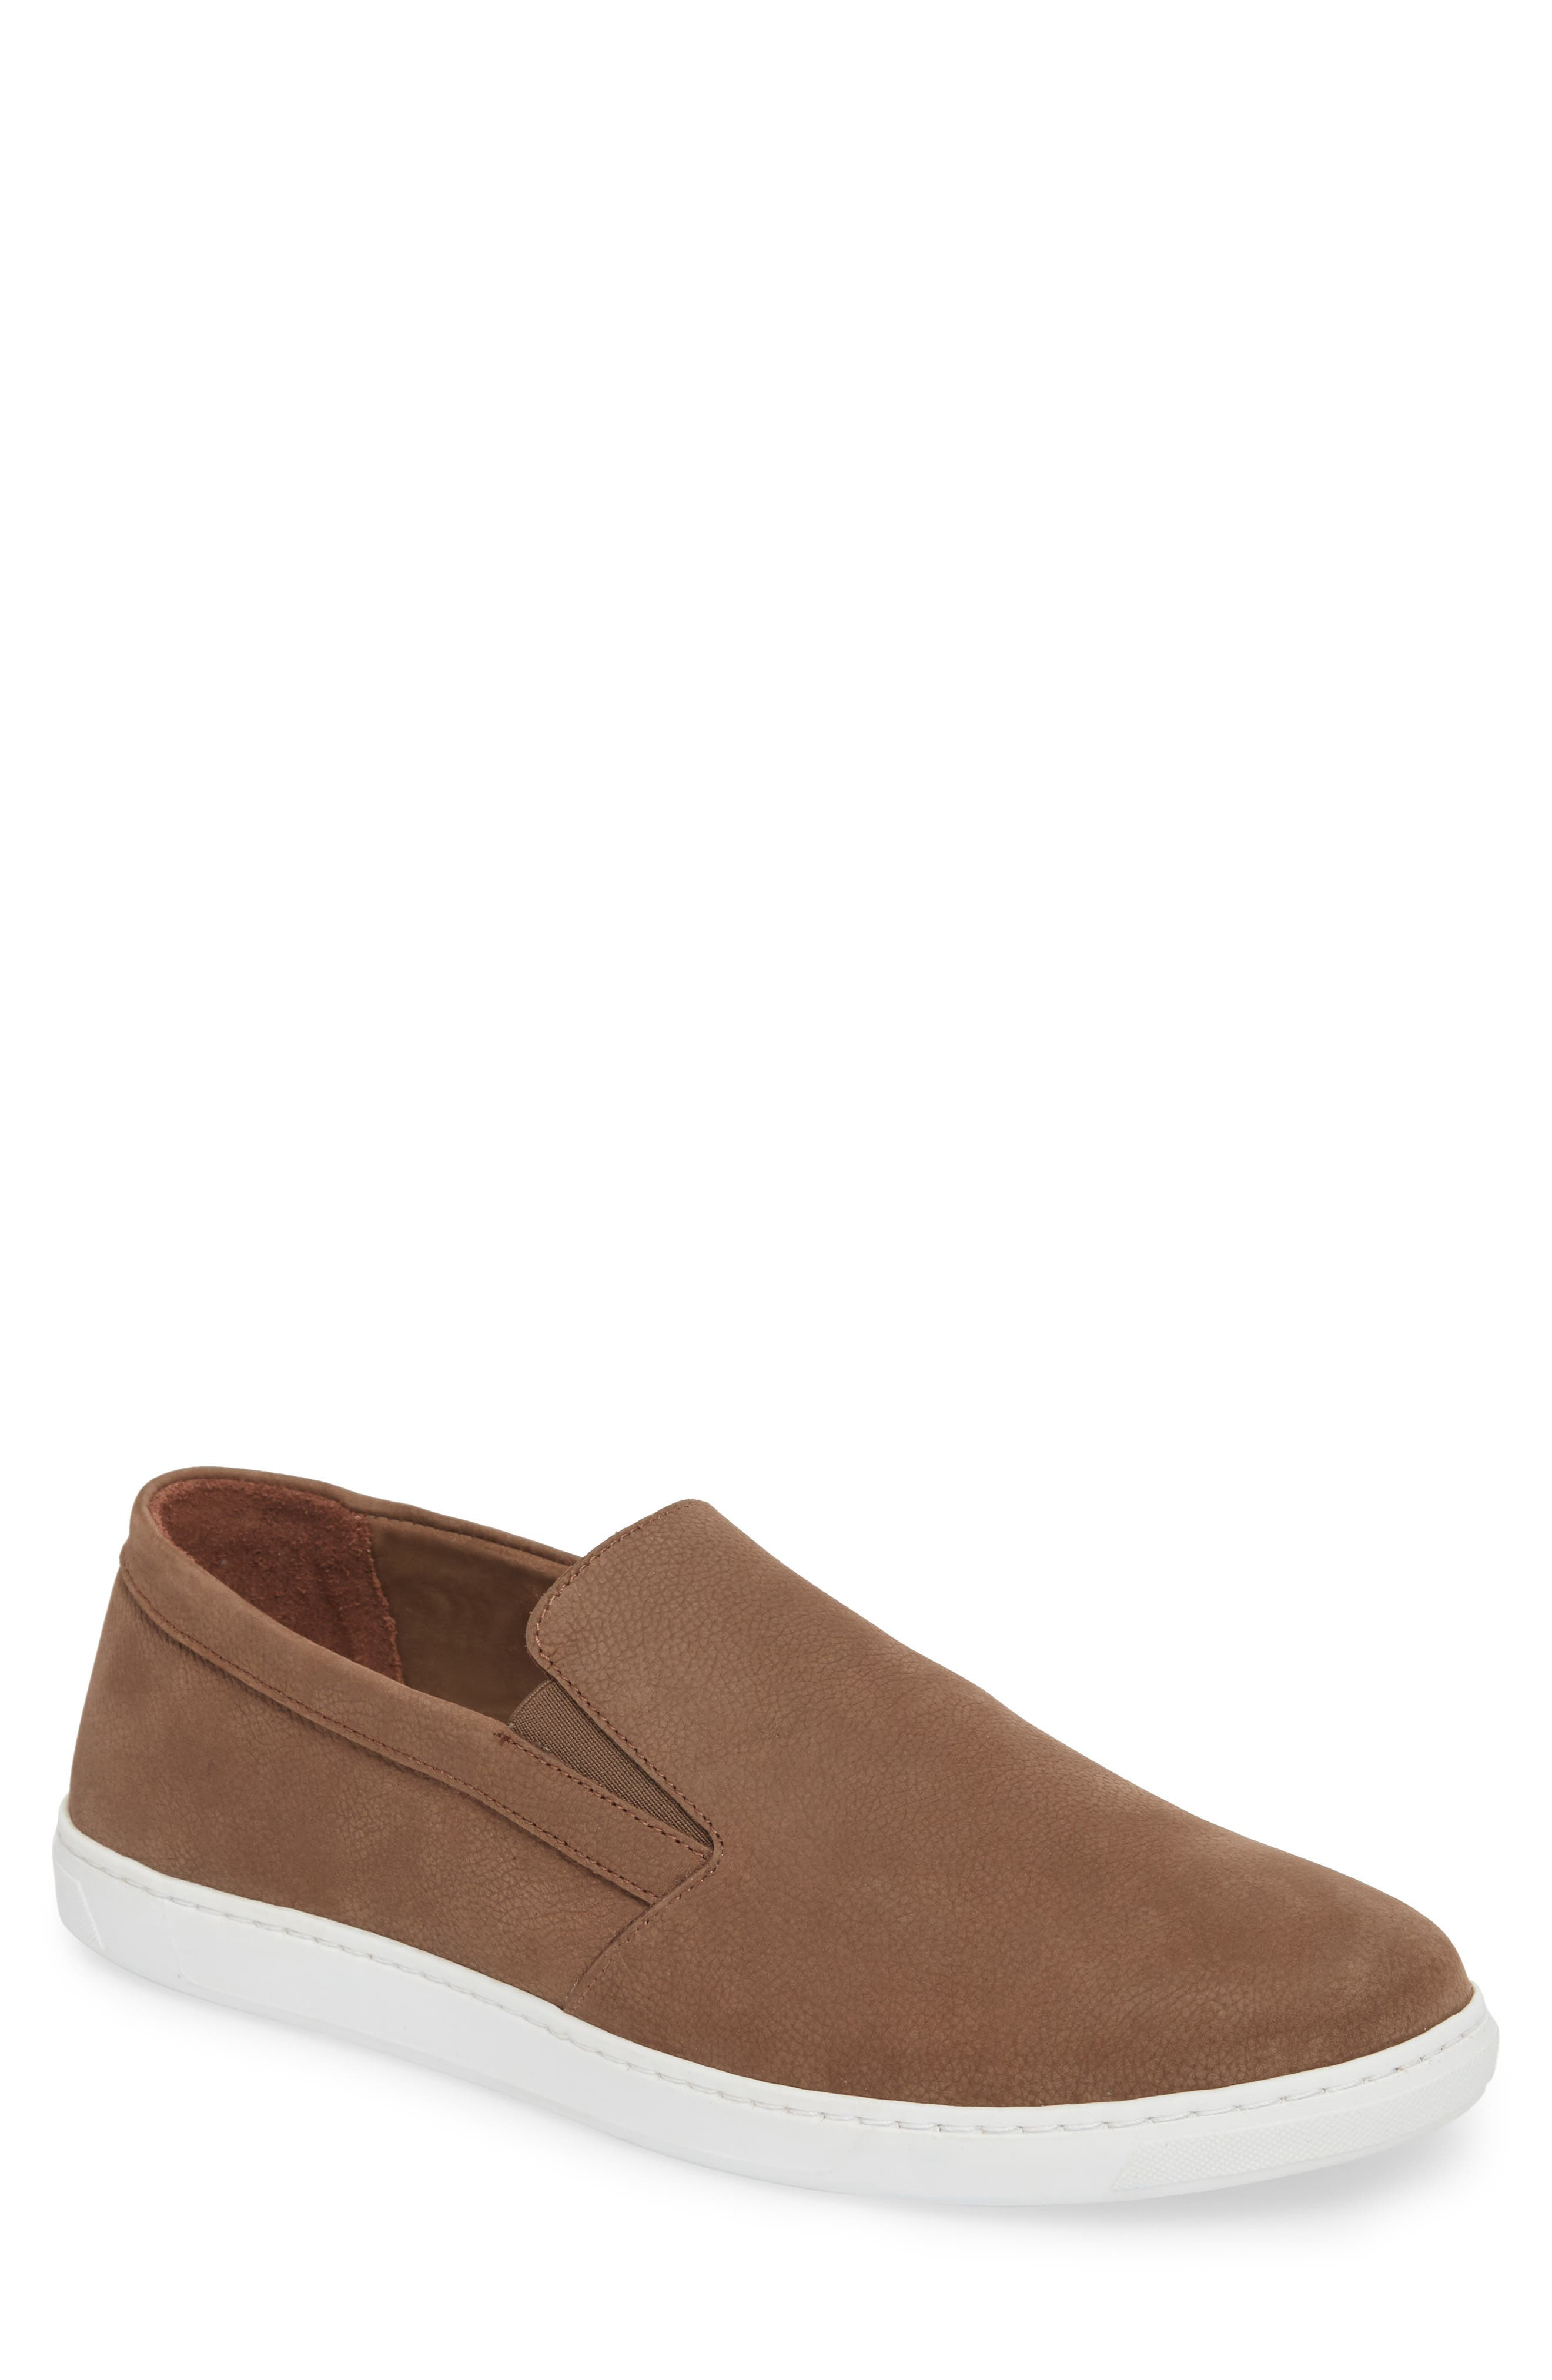 Neff Slip-On Sneaker,                             Main thumbnail 1, color,                             Taupe Leather